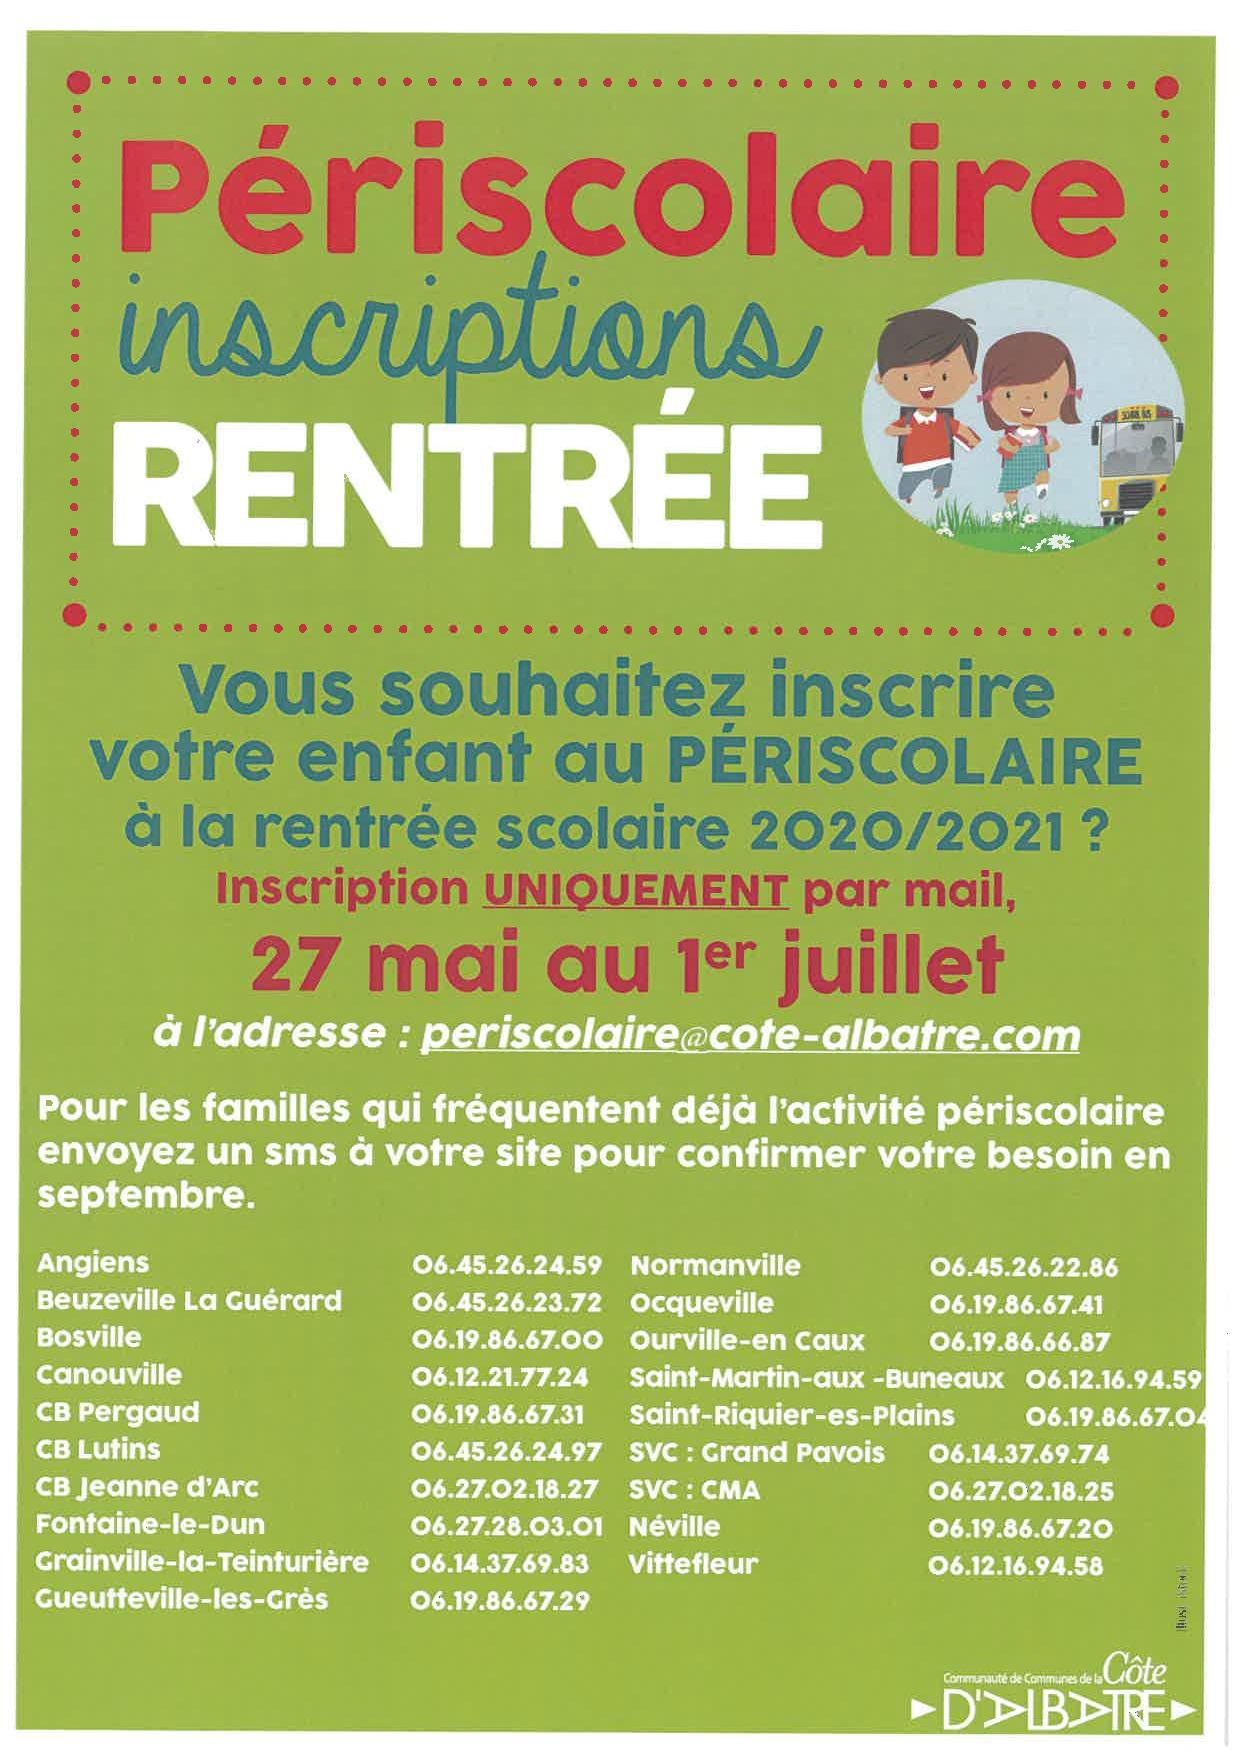 inscriptions-periscolaire-rentree-page-001